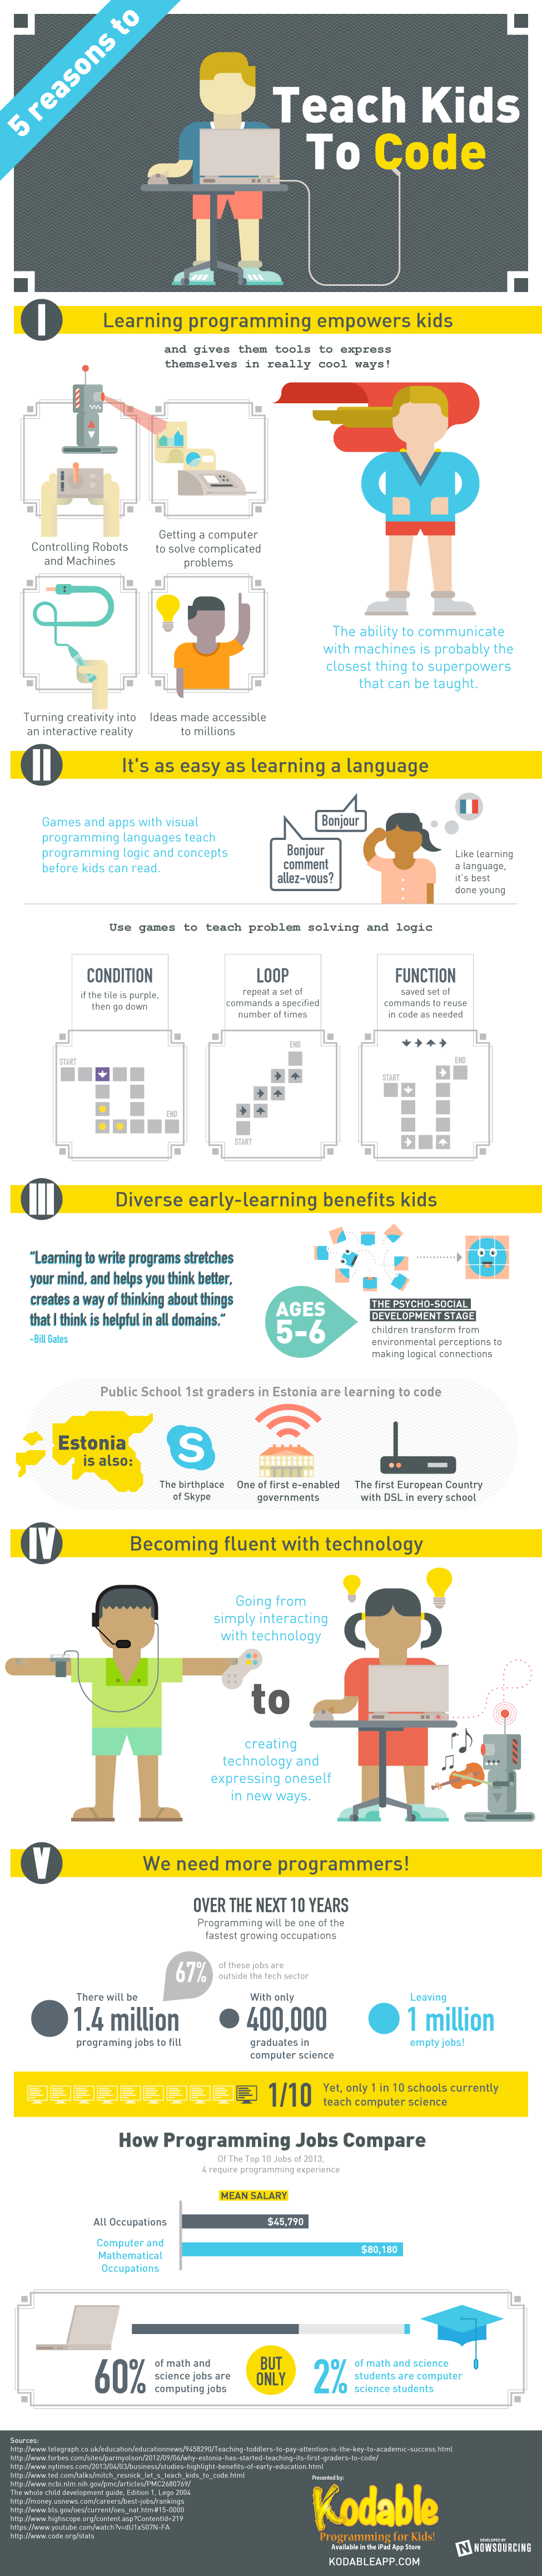 5 Reasons Why You Should Teach Kids to Code ~ Educational Technology and Mobile Learning